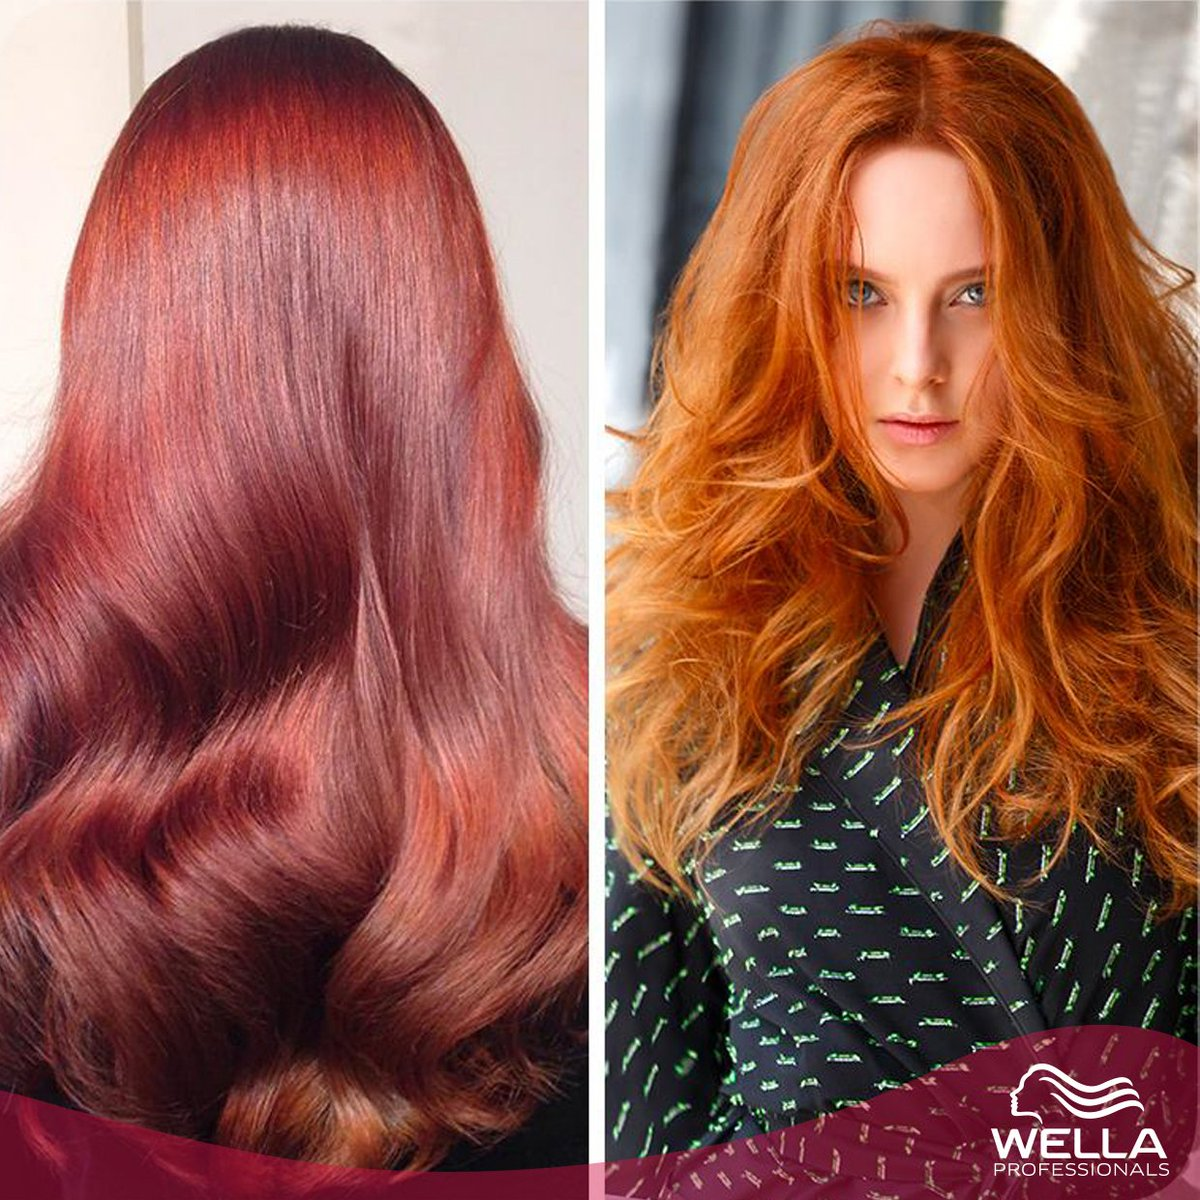 Wella Professionals On Twitter Gorgeous Hair Colors By Kai Sohn